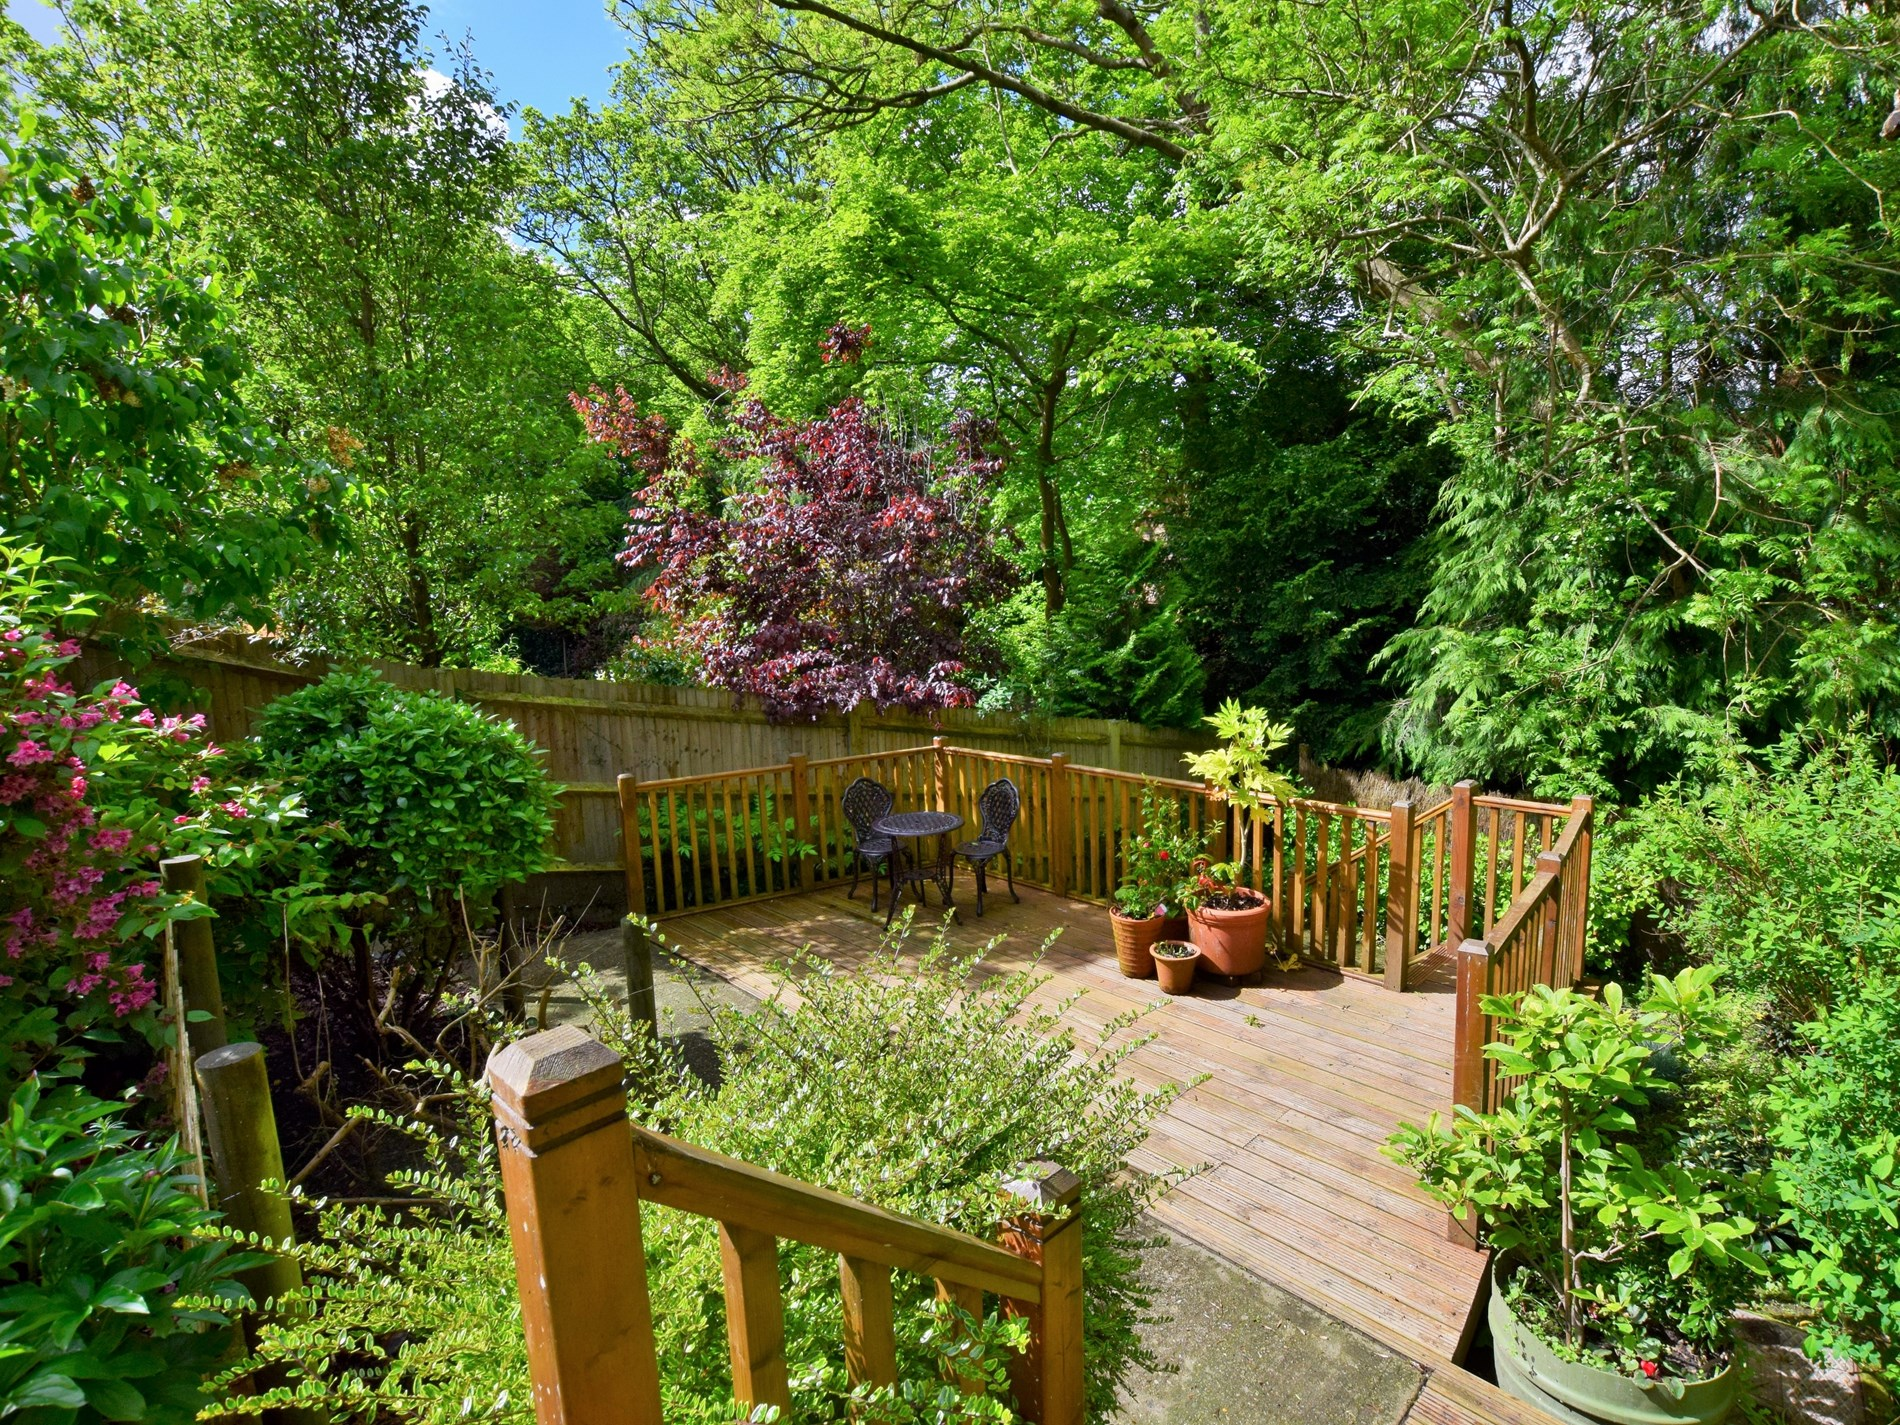 Wander down to the decked area and relax listening to the birds sing